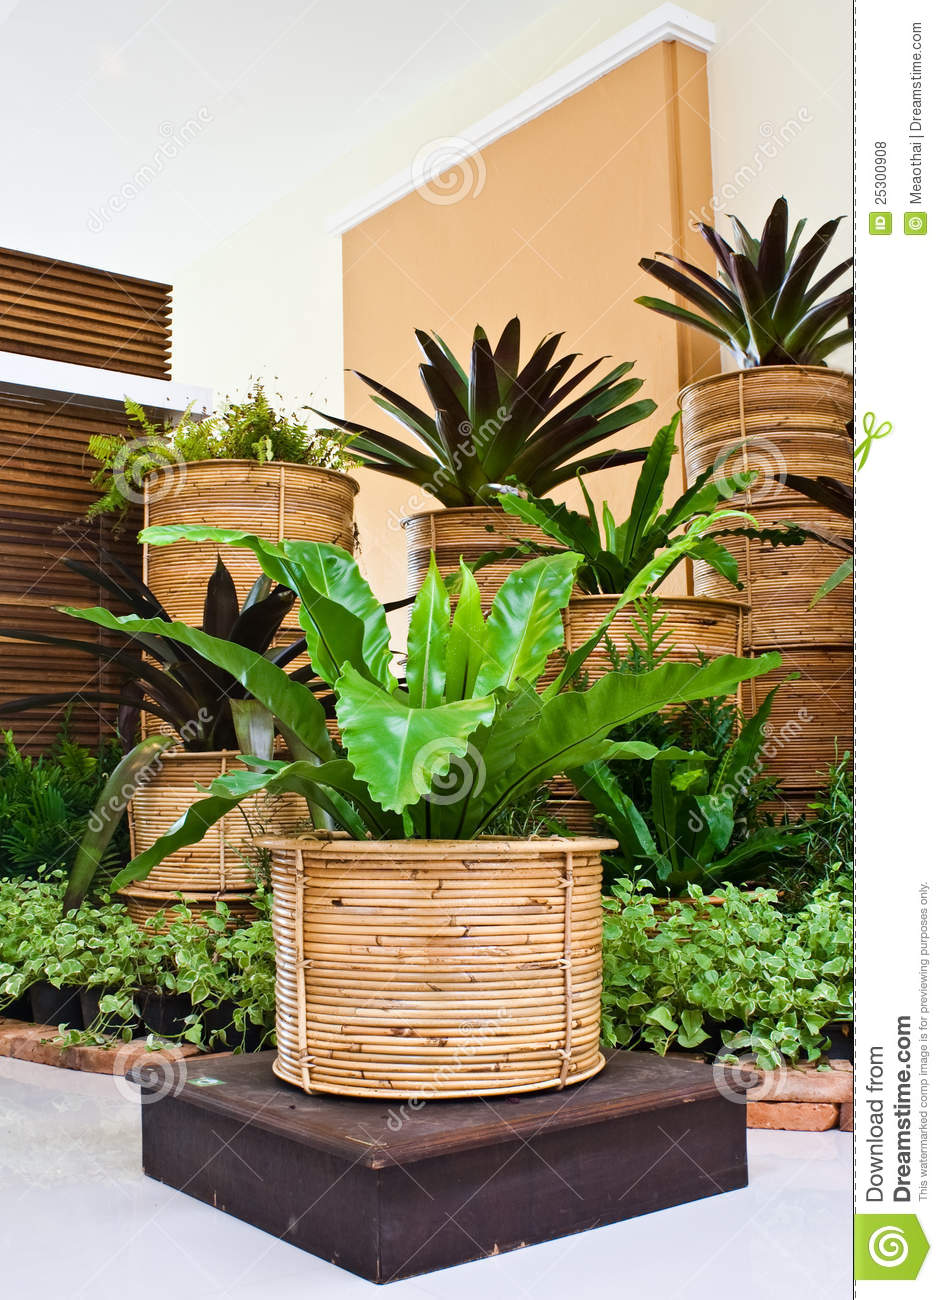 Jardin d int rieur de foug re pour la d coration de coin for Decoration jardin interieur